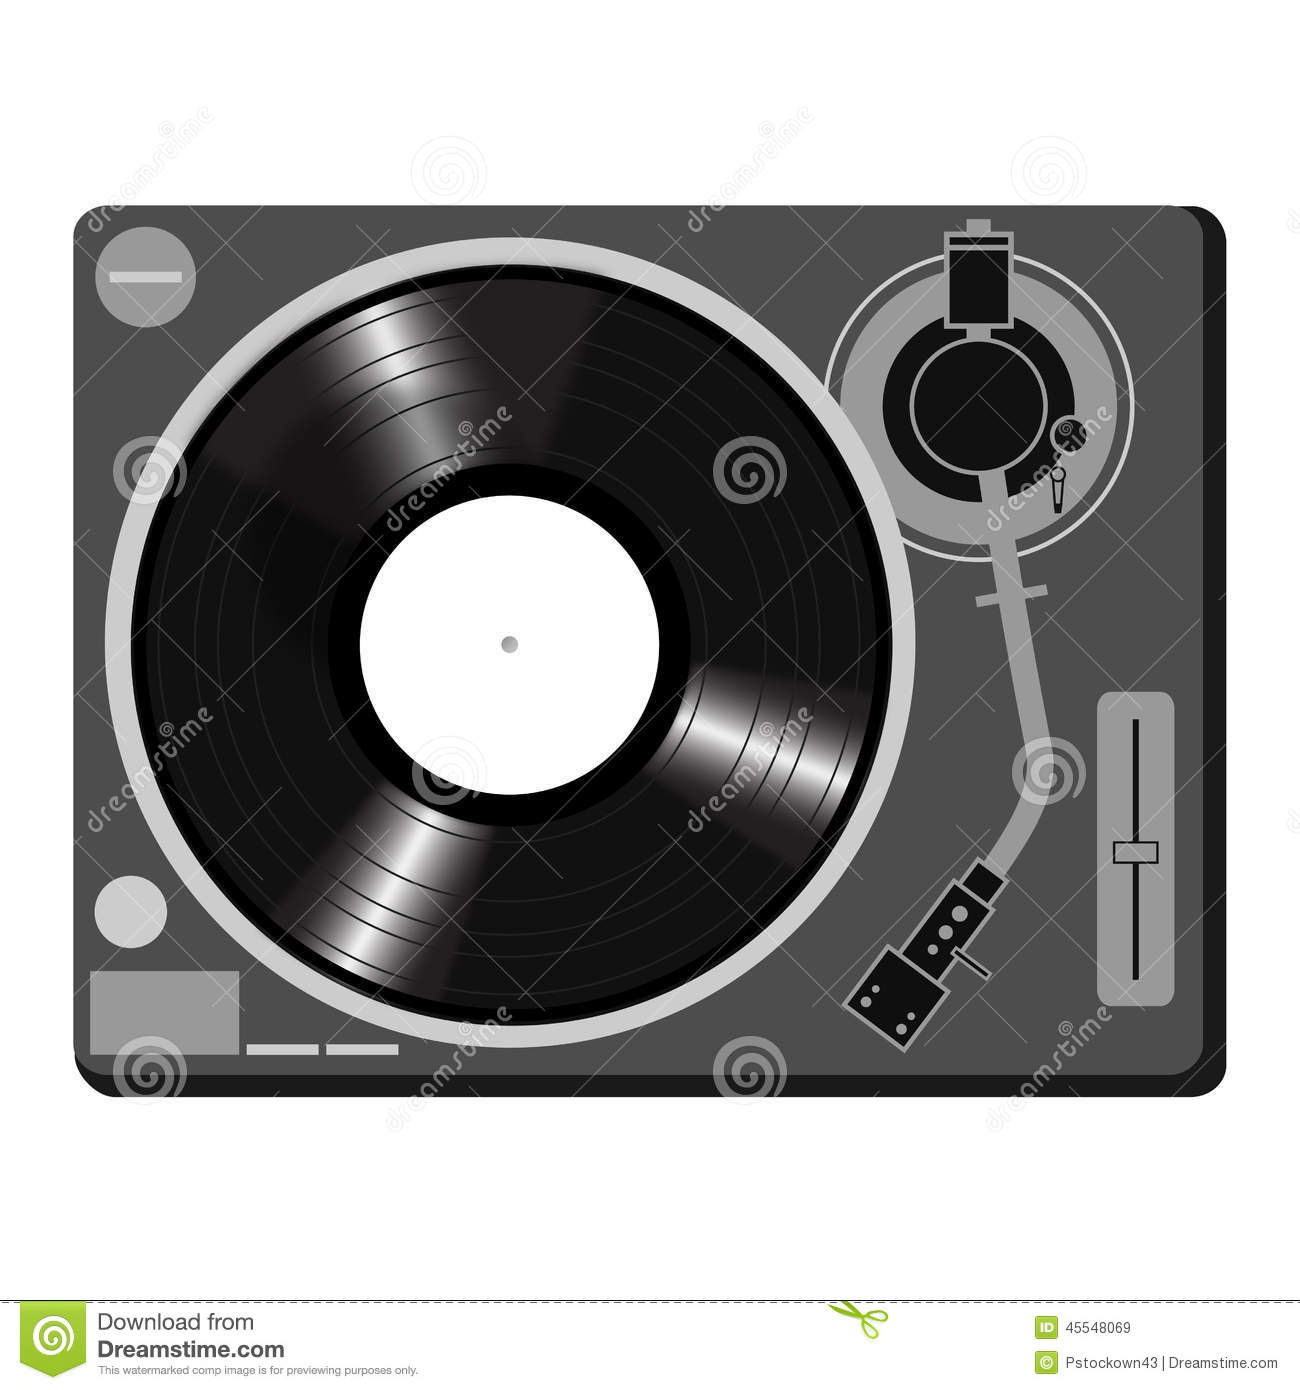 Turntable vector Royalty Free